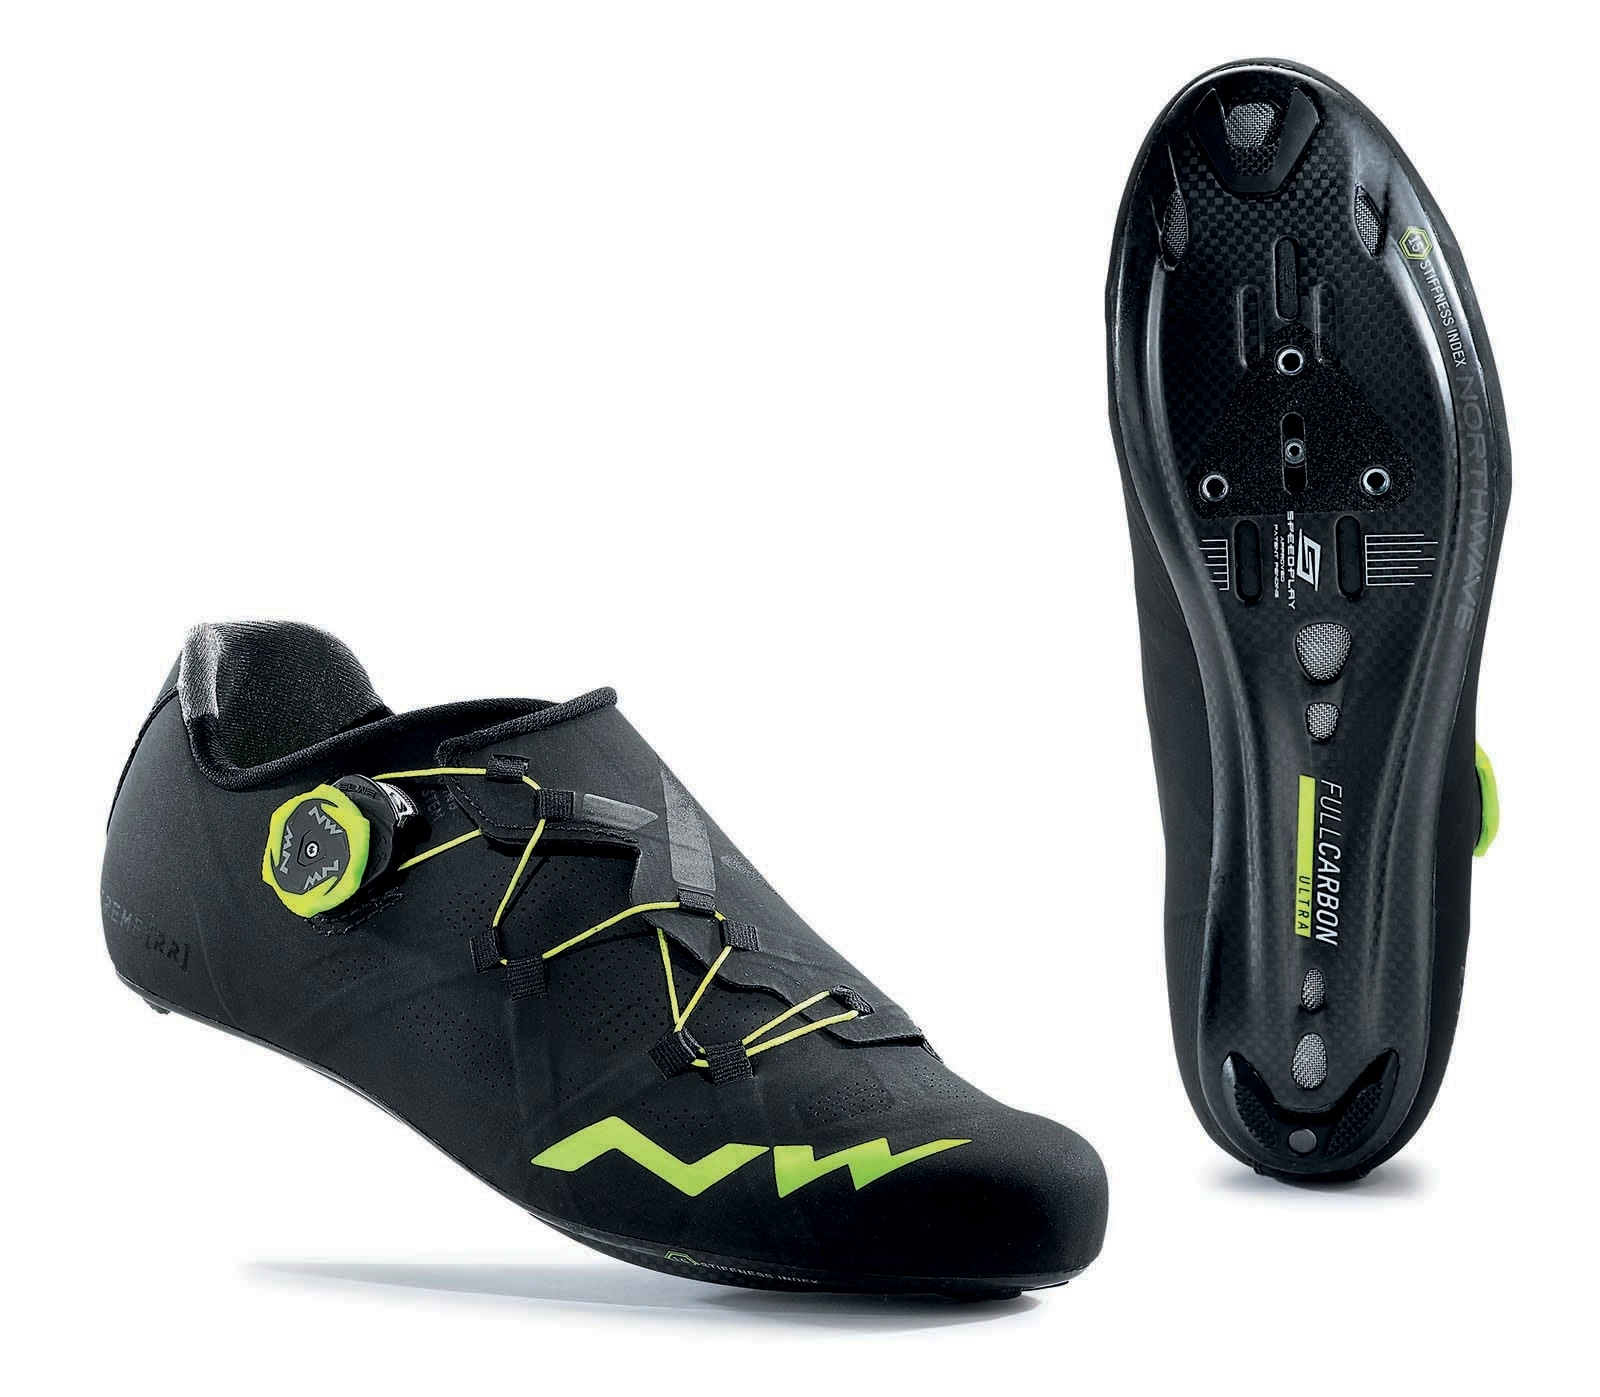 Best price Northwave Man road shoes EXTREME RR Italy2us.com